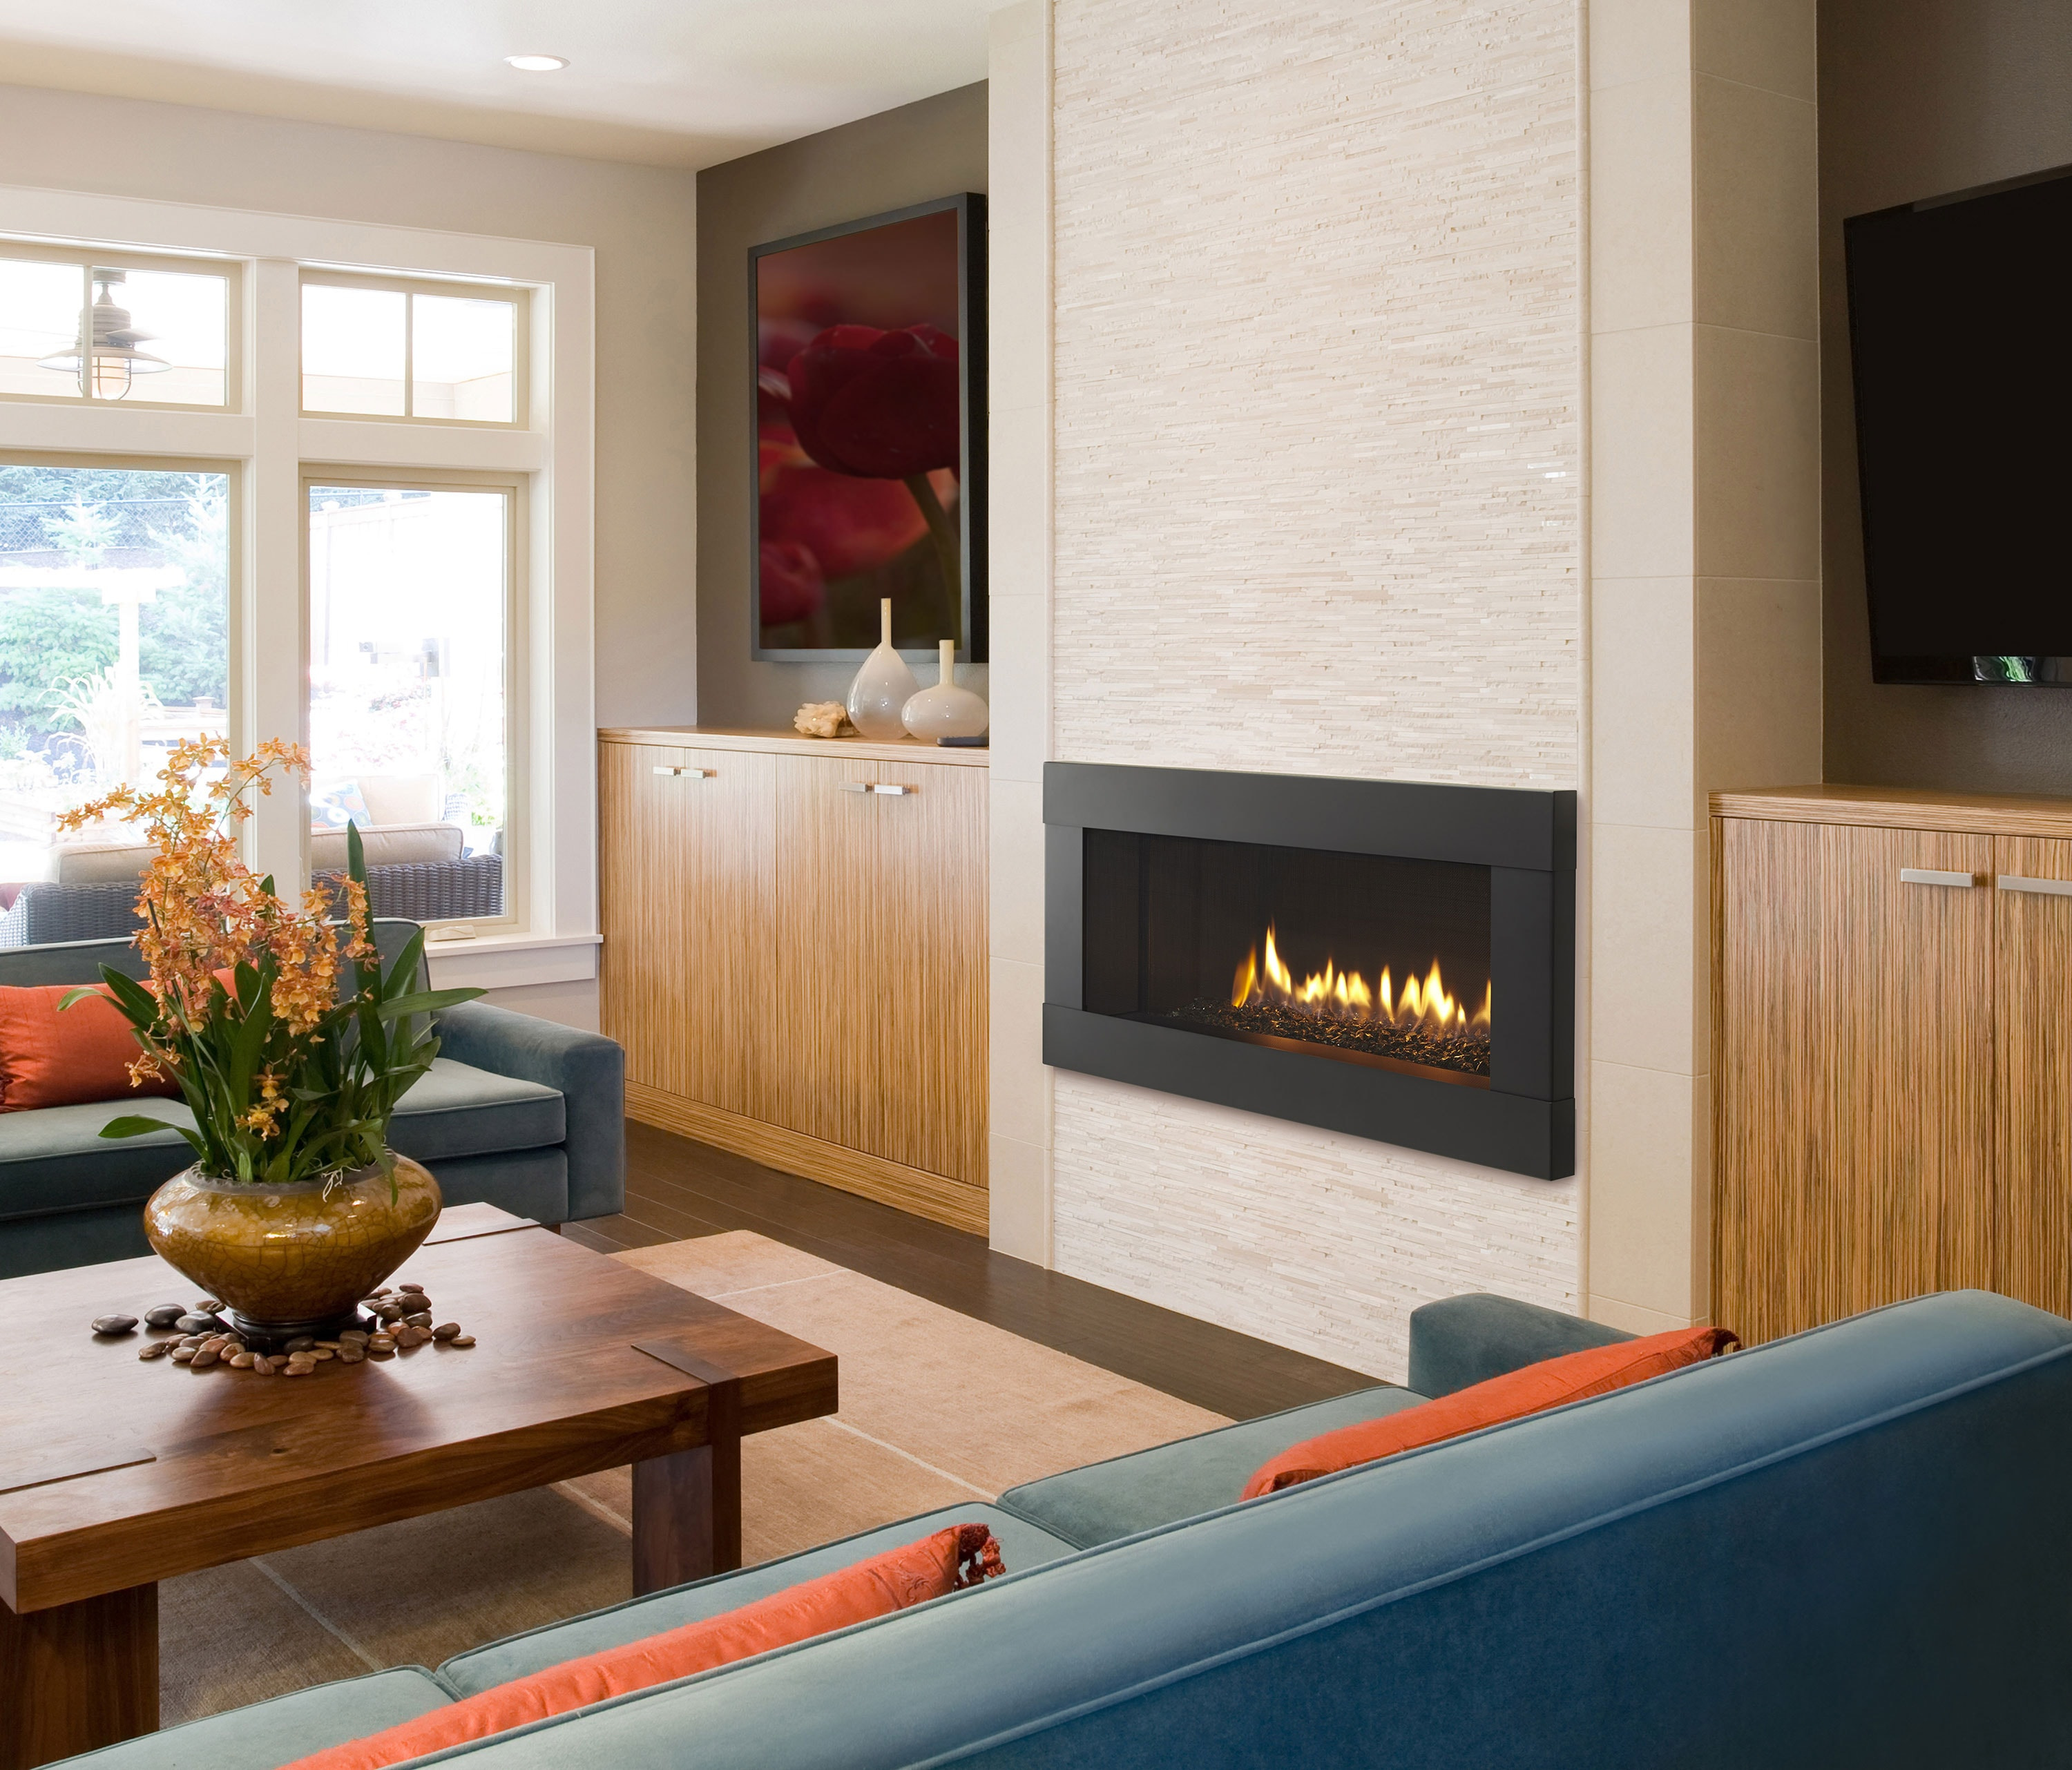 acucraft misc key fireplace decisions for custom gas peninsula designing a pics linear